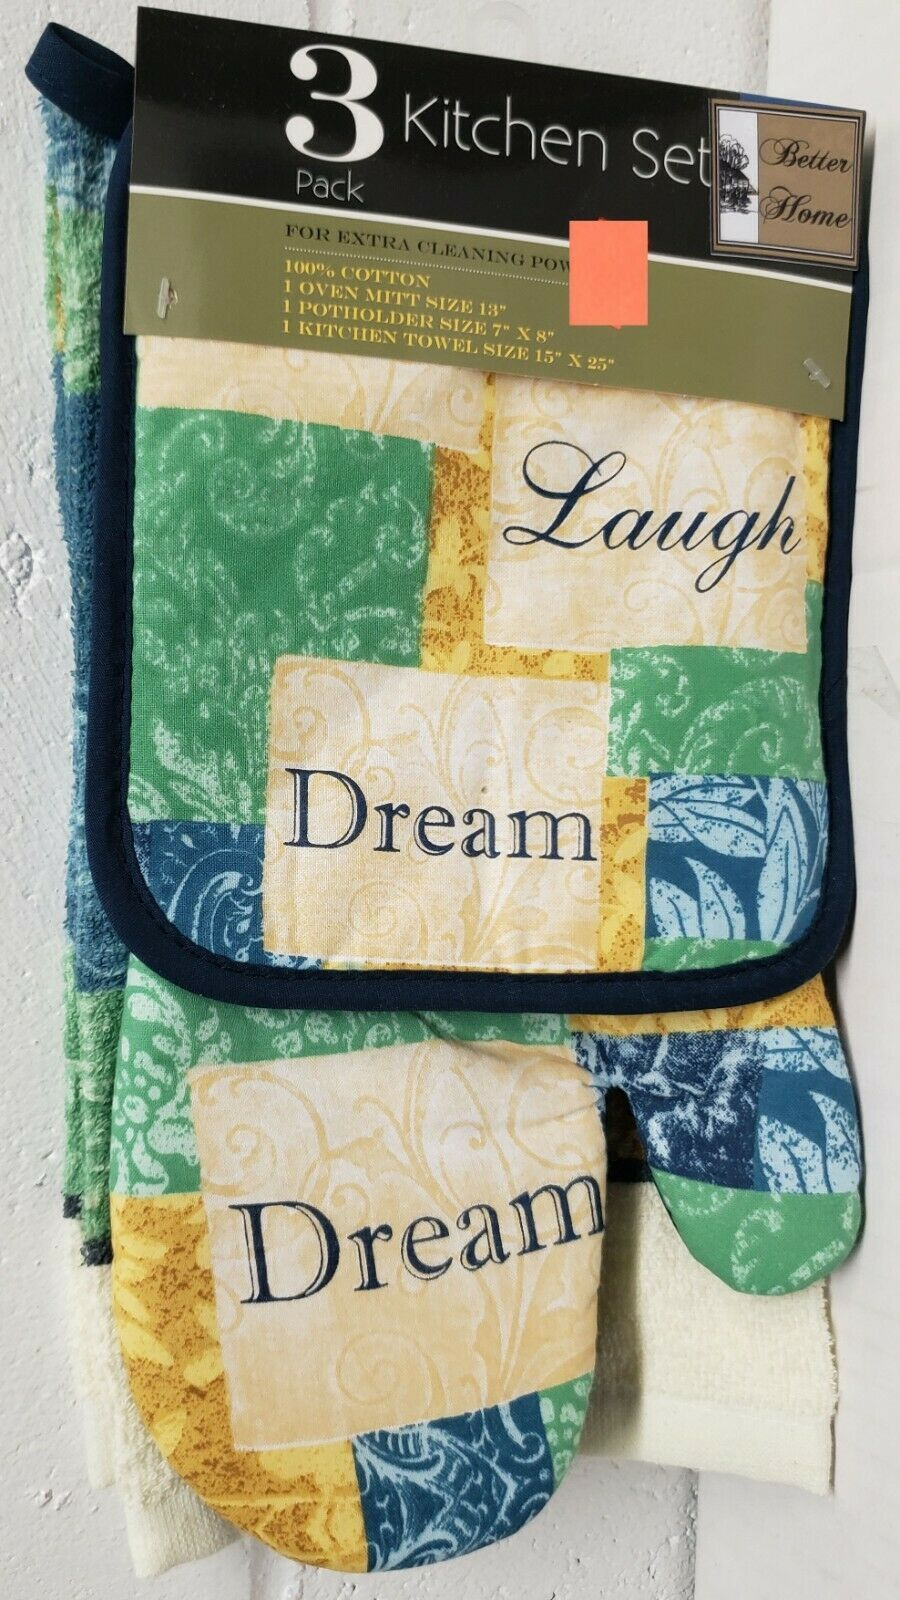 Primary image for 3 pc KITCHEN SET: 1 POT HOLDER, 1 TOWEL & 1 OVEN MITT, LIVE LAUGH DREAM, BH